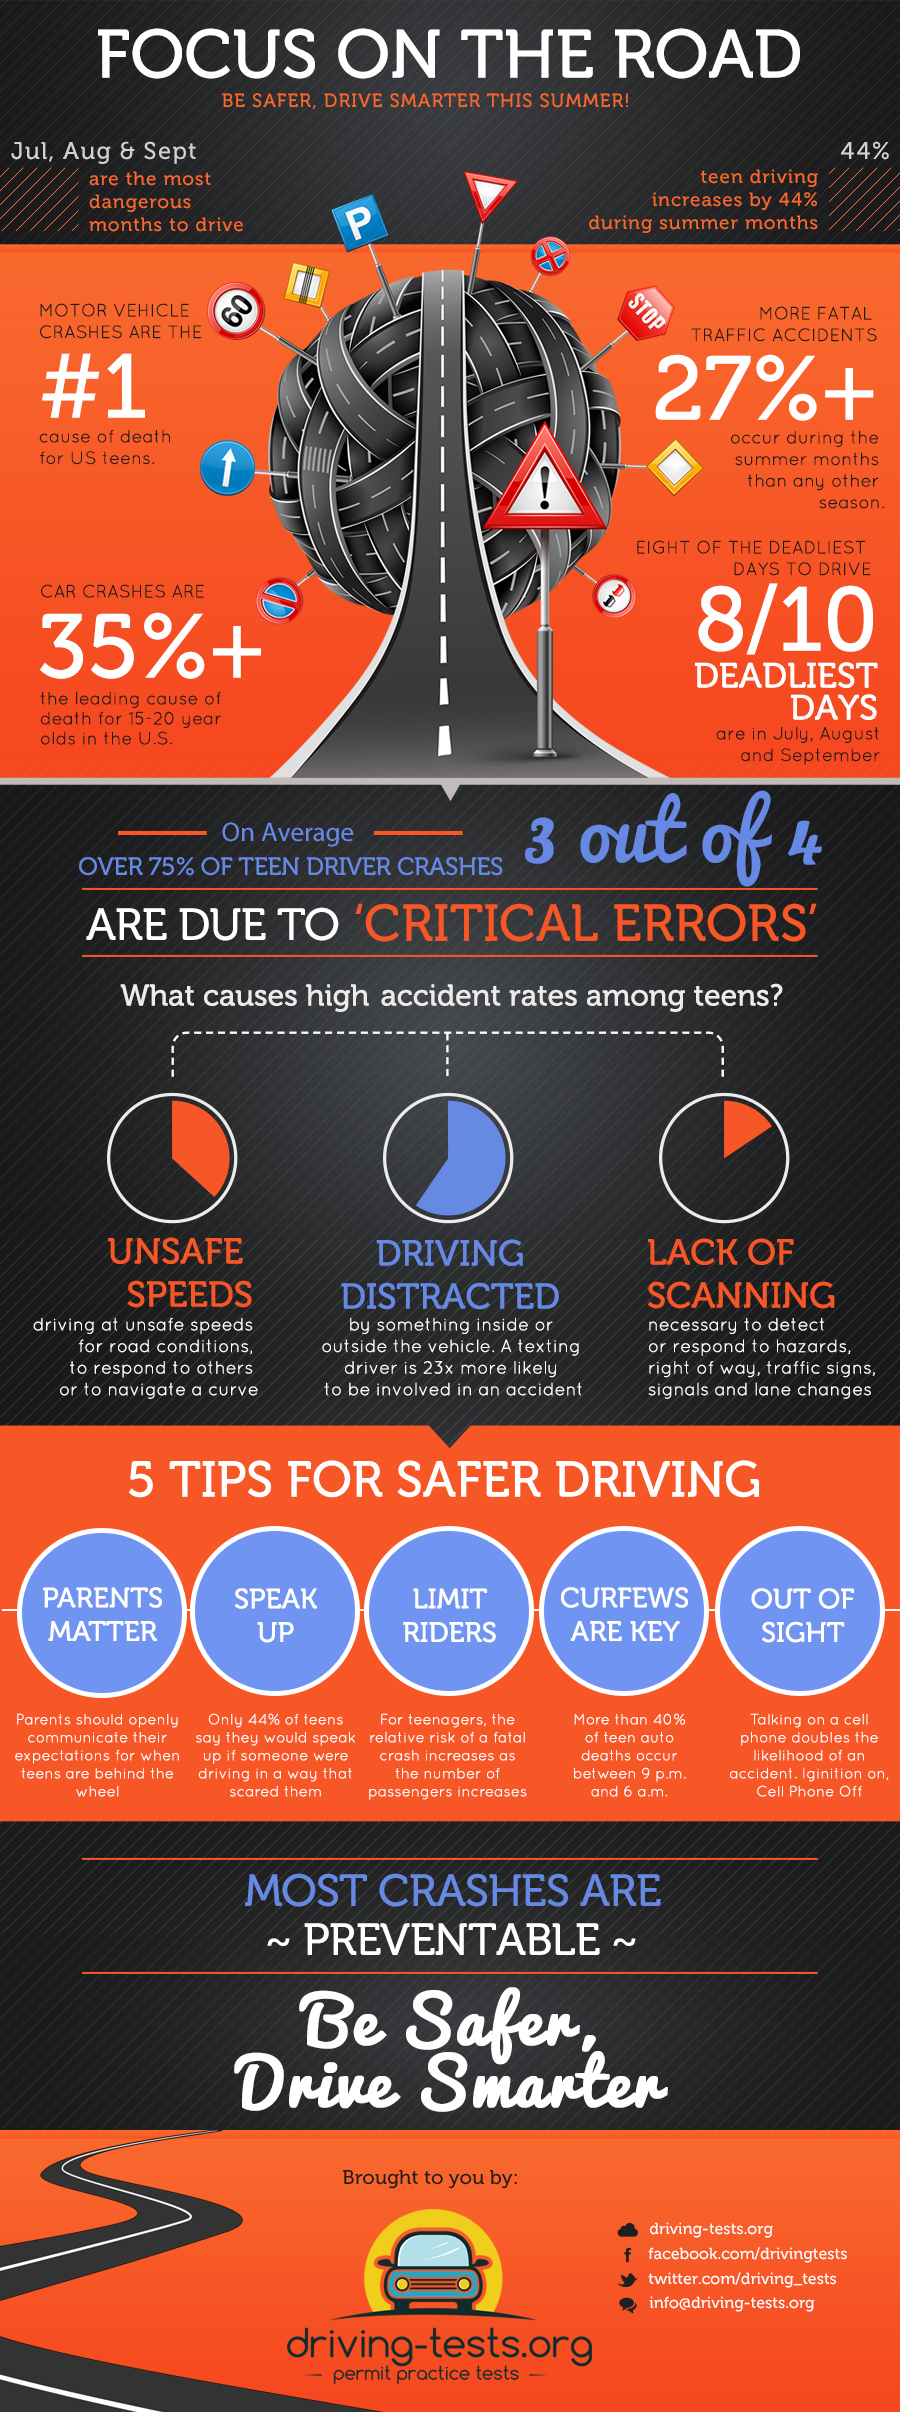 focus-on-the-road-infographic_51e542a09d850